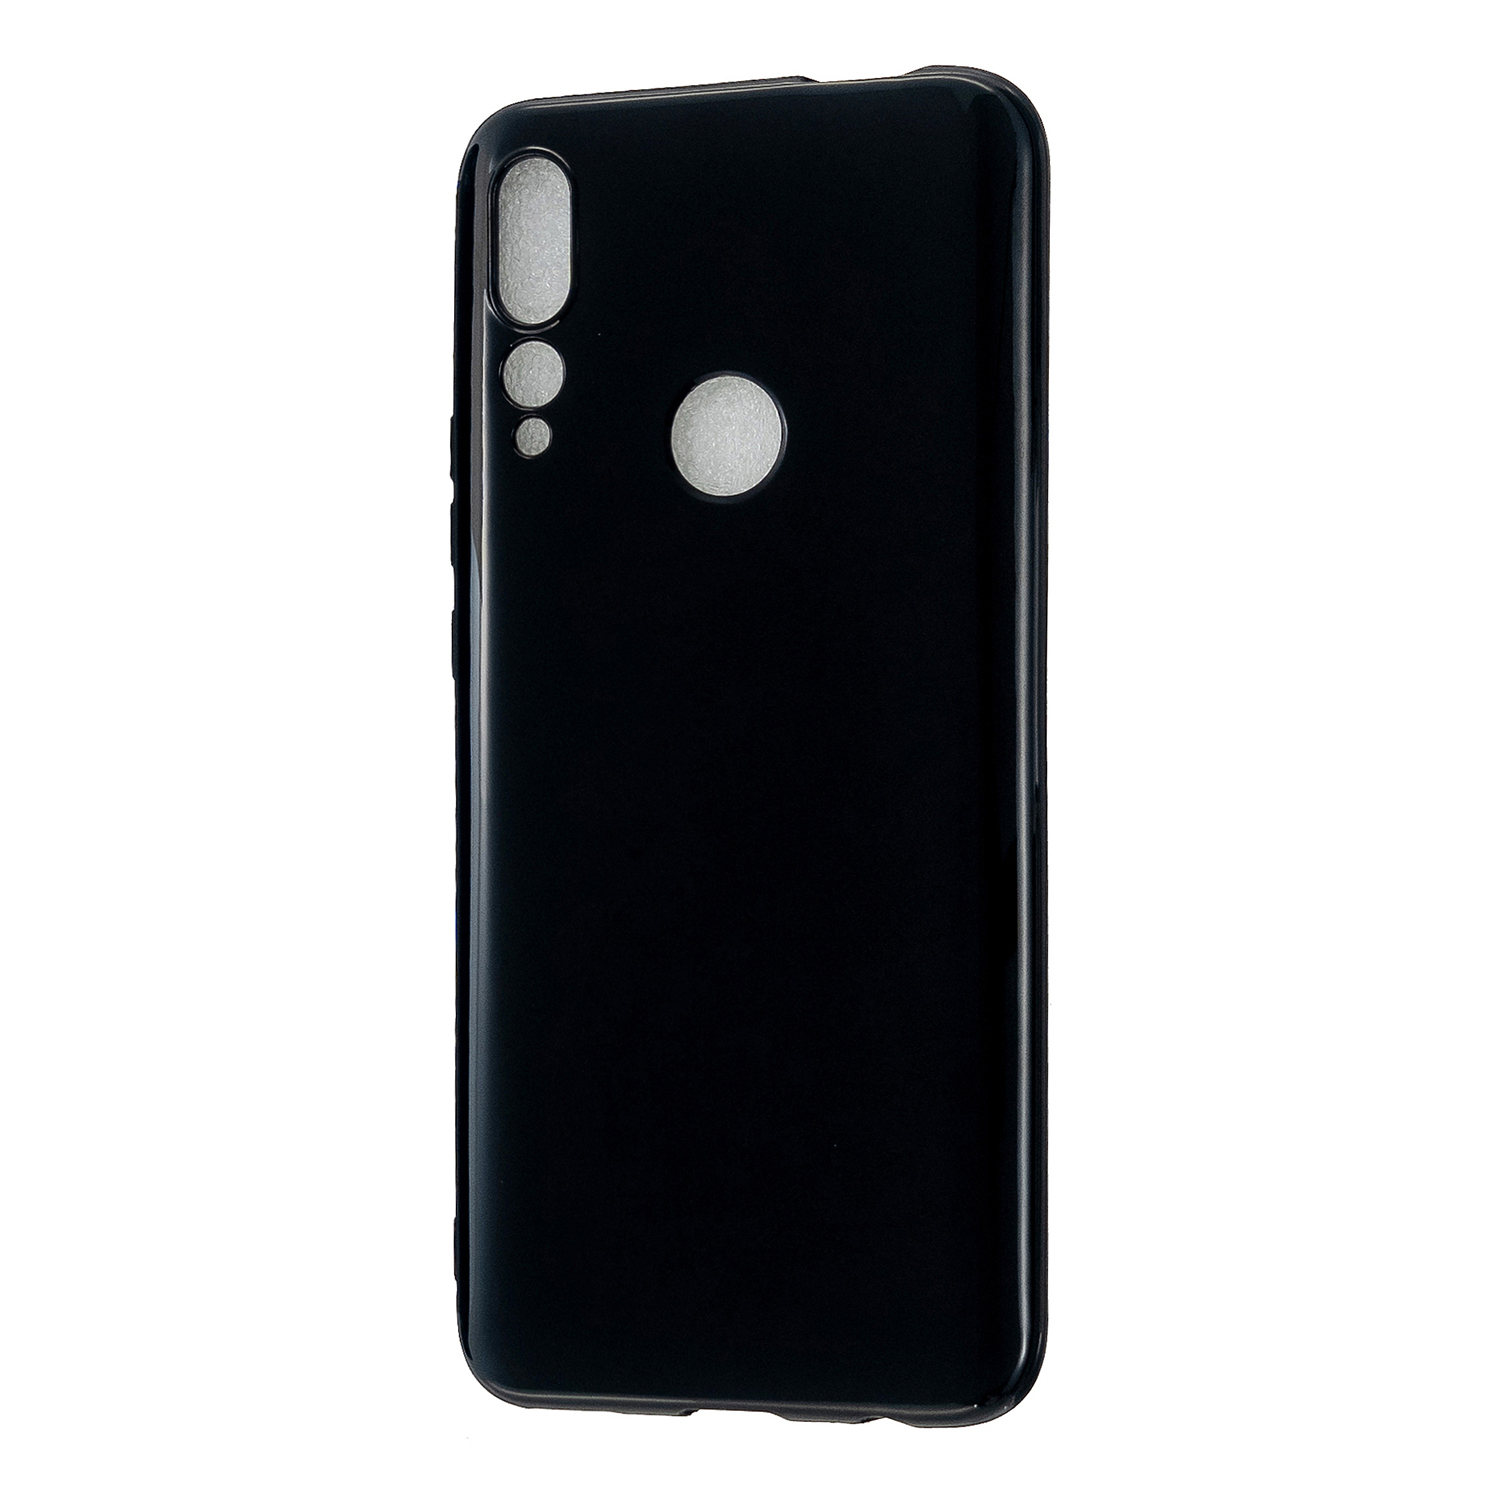 For HUAWEI Y9/Y9 Prime 2019 Cellphone Shell Glossy TPU Case Soft Mobile Phone Cover Full Body Protection Bright black